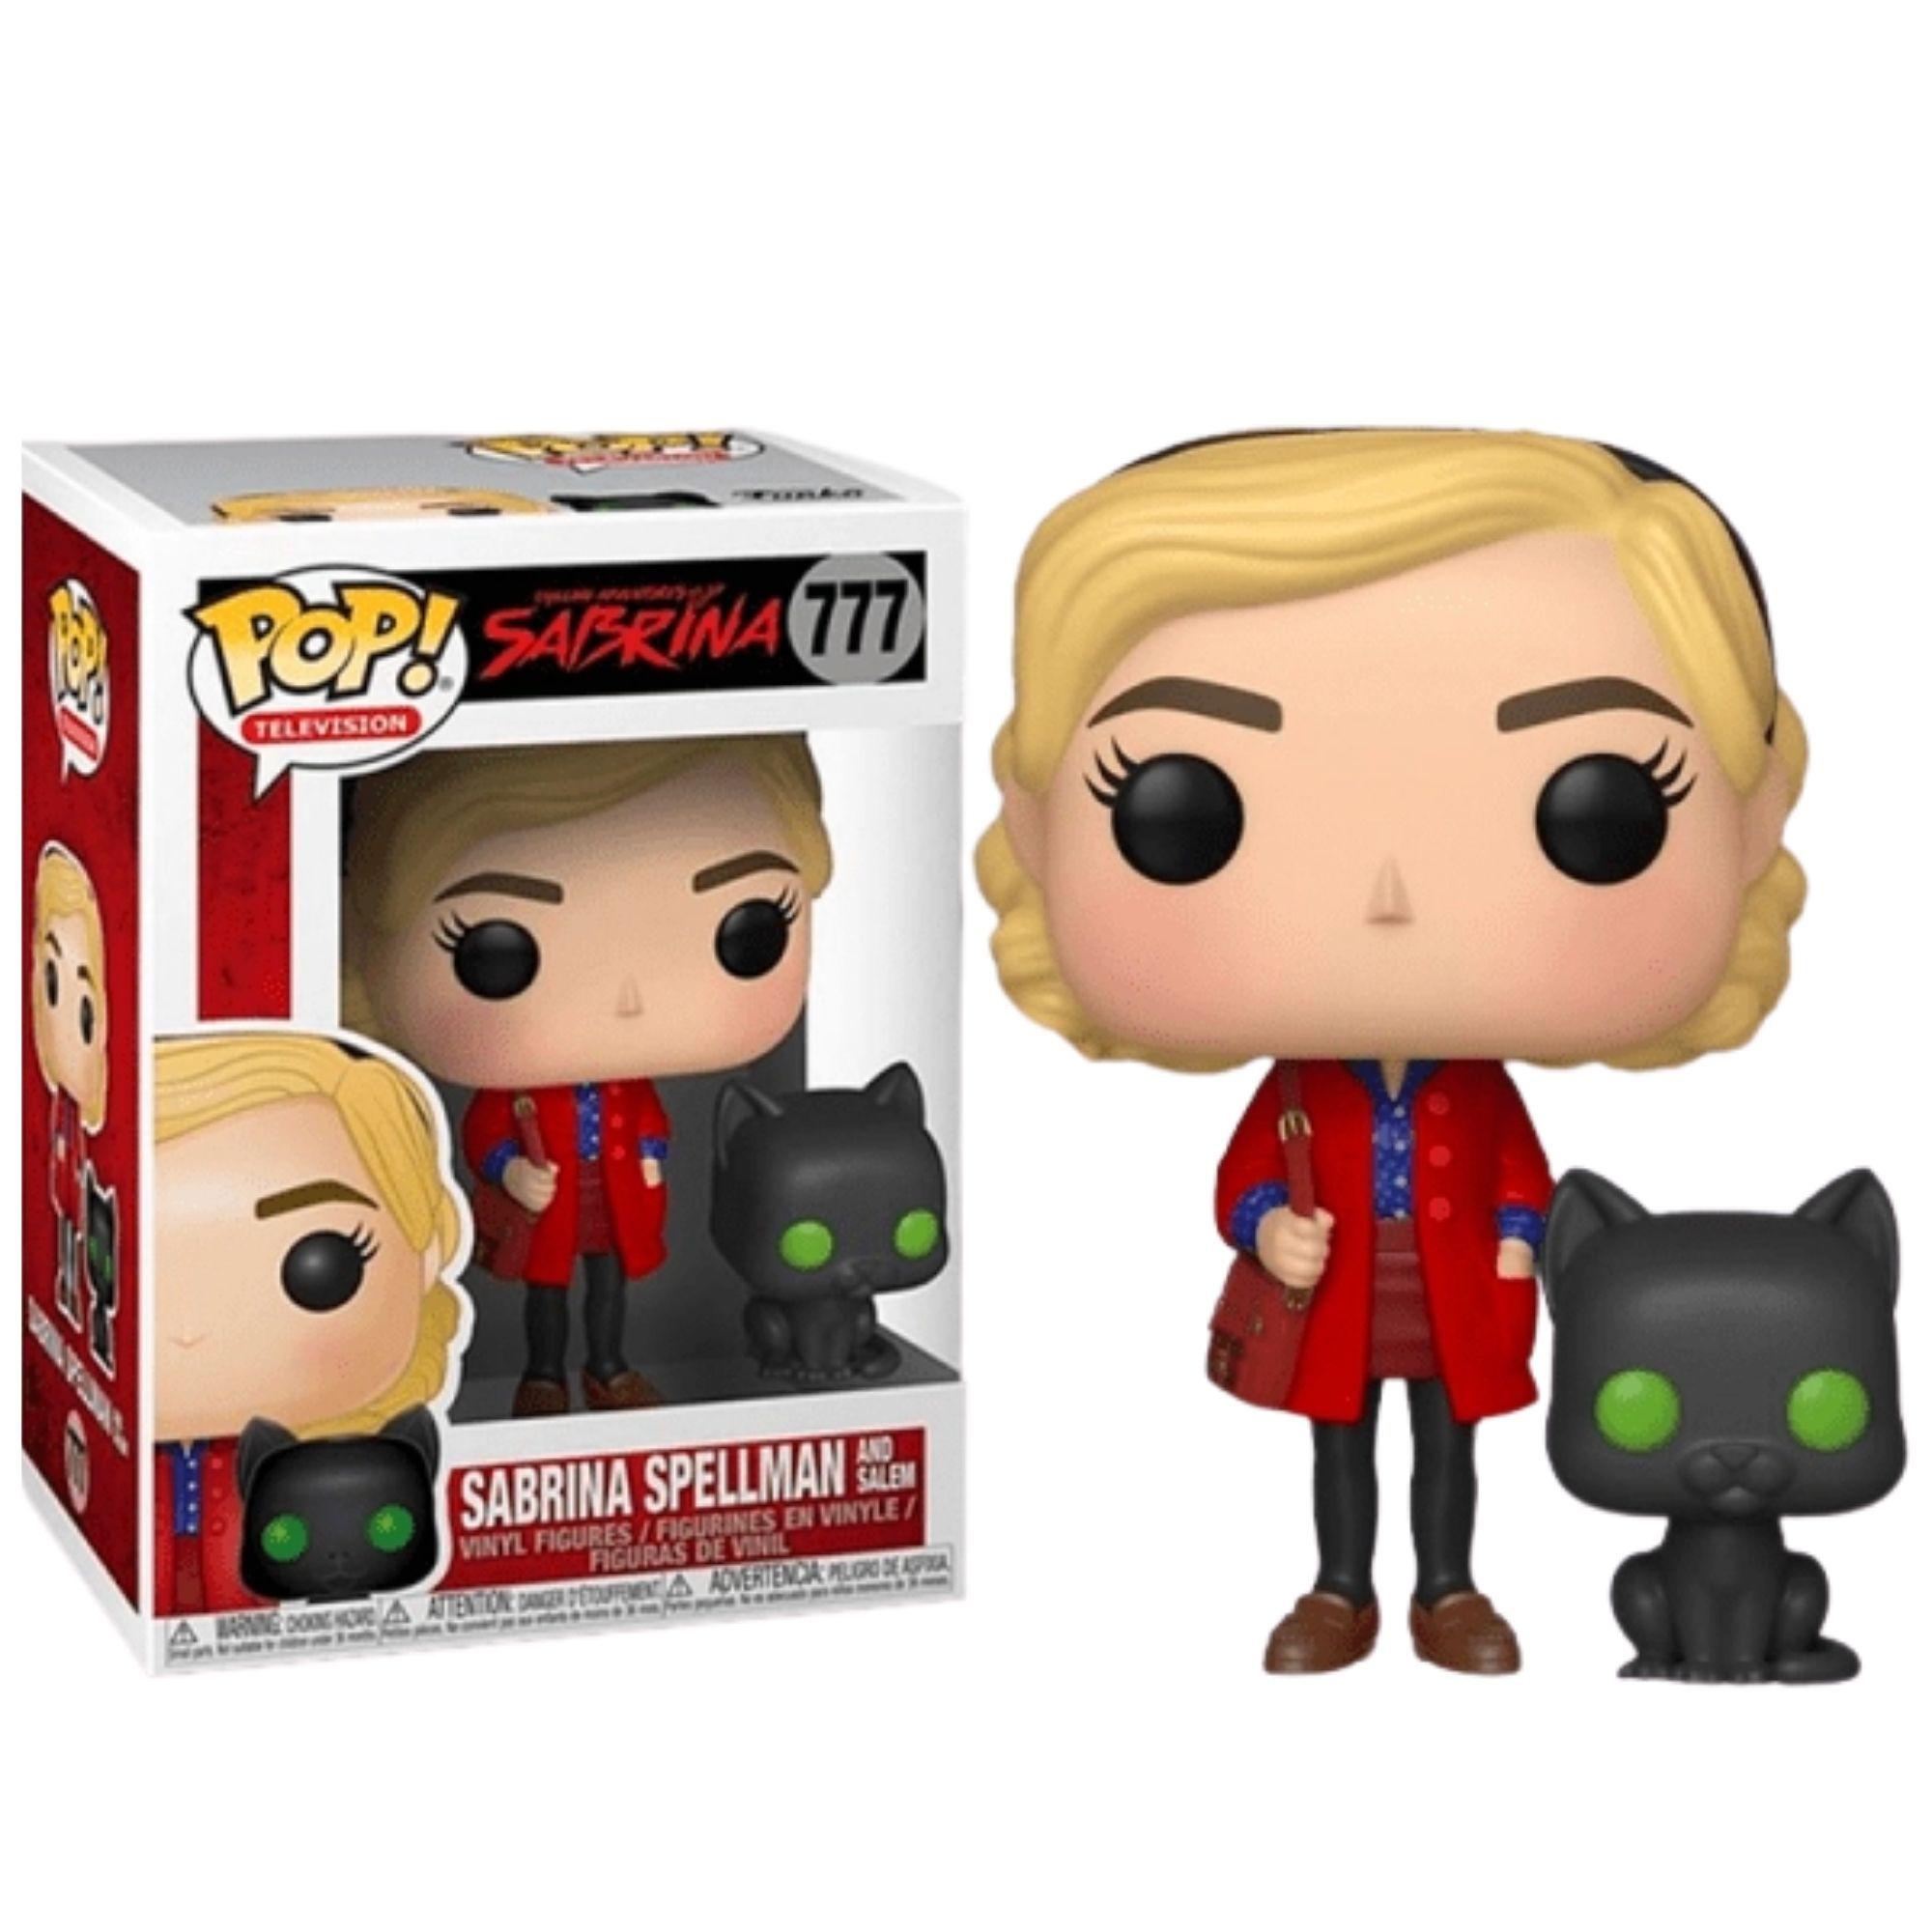 Funko Pop O Mundo Sombrio De Sabrina  - Game Land Brinquedos